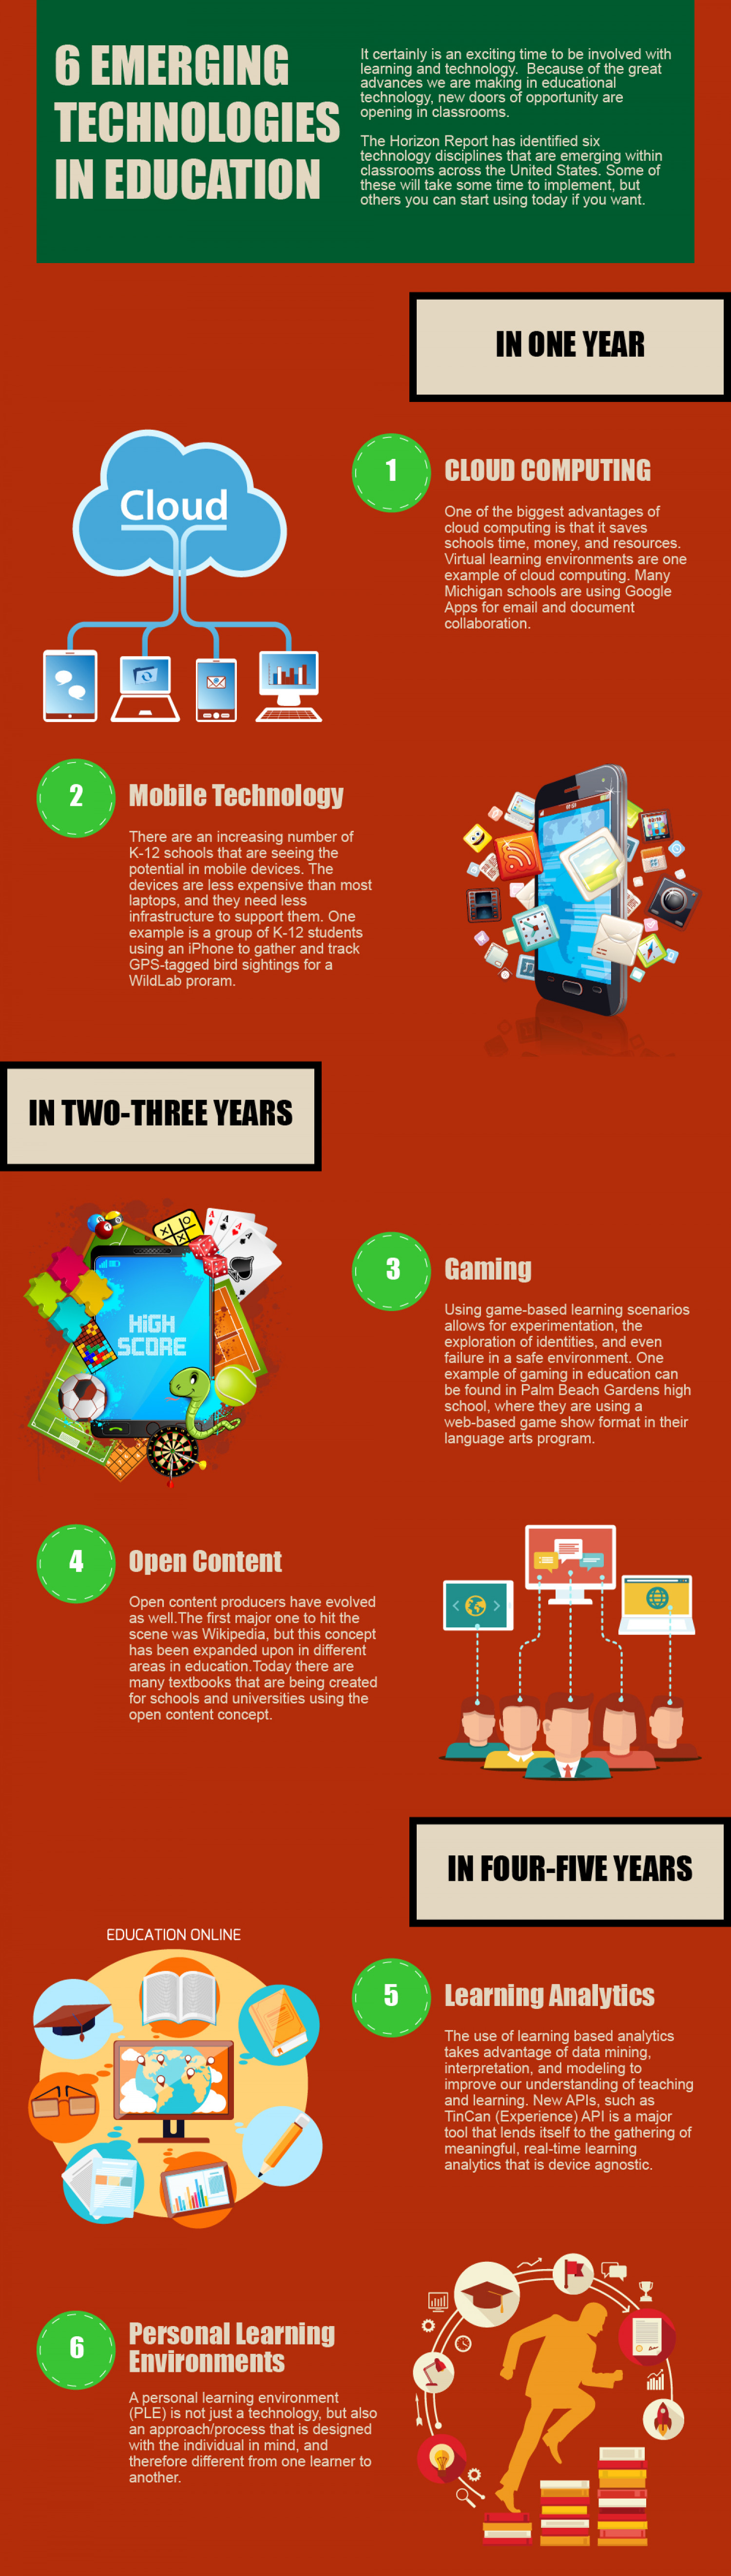 The Top 6 Emerging Technologies in K-12 Education Infographic